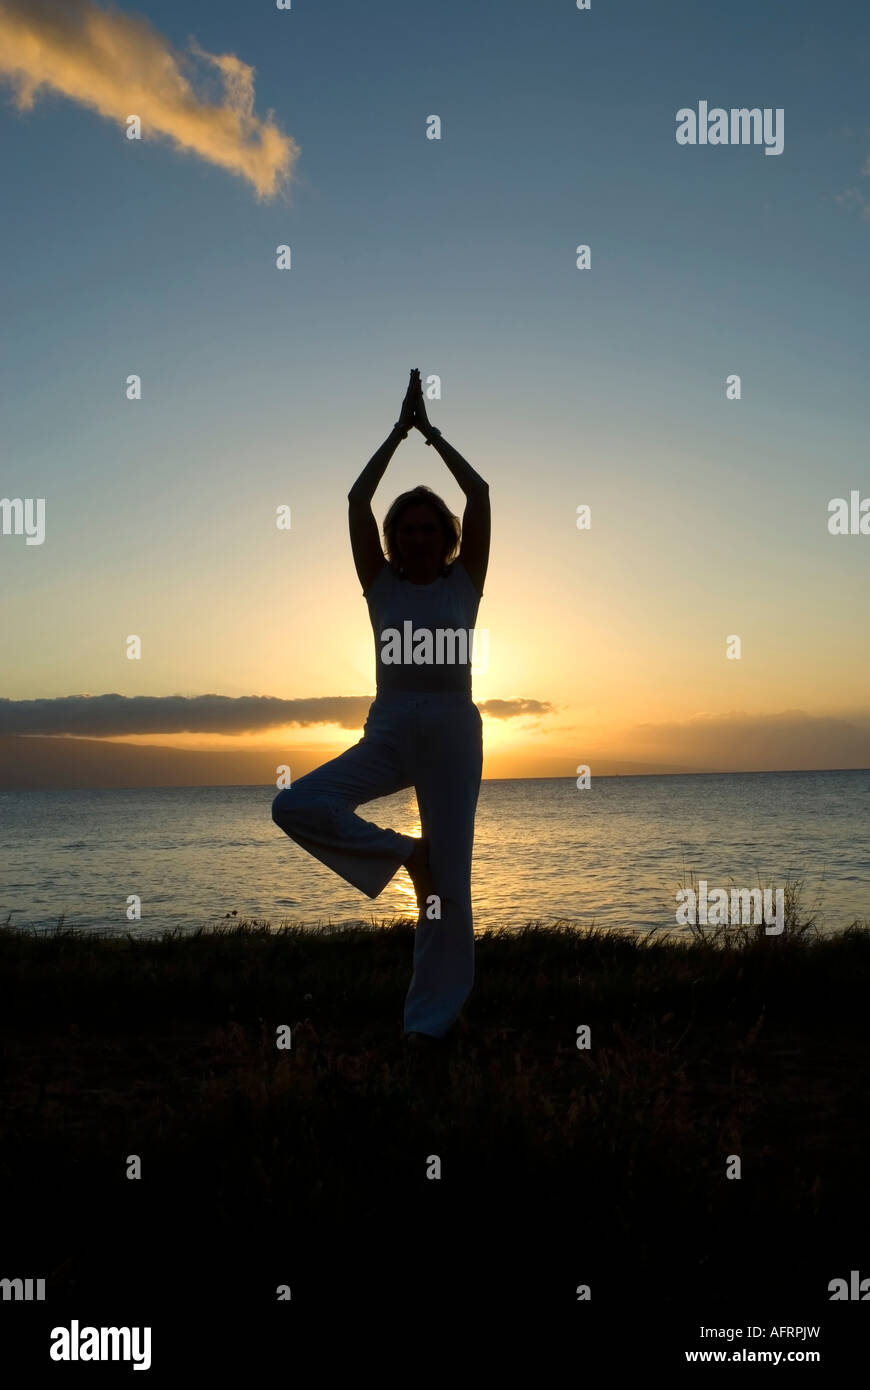 woman in a classic yoga pose at the beach Stock Photo - Alamy